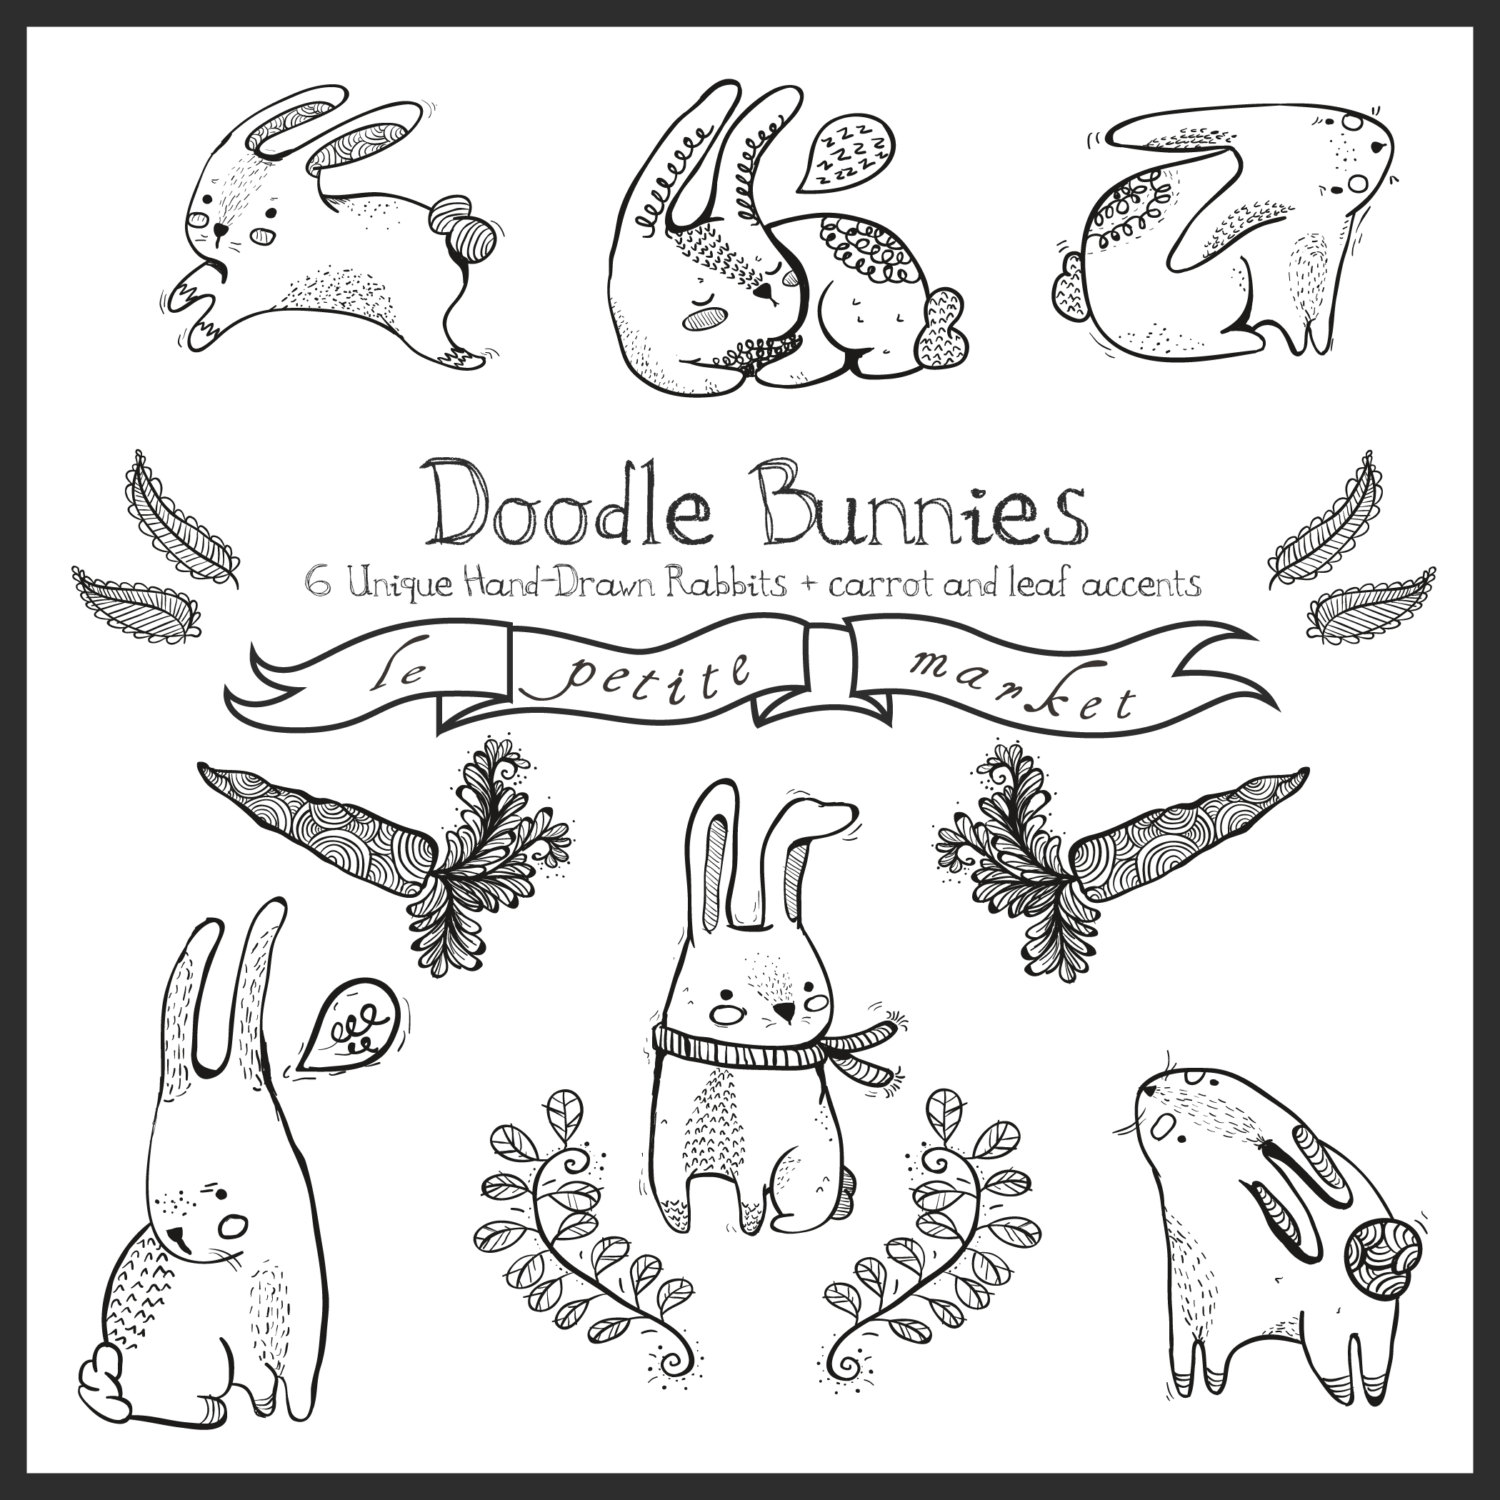 Drawn rabbit hand drawn And Bunny Cute  Digital